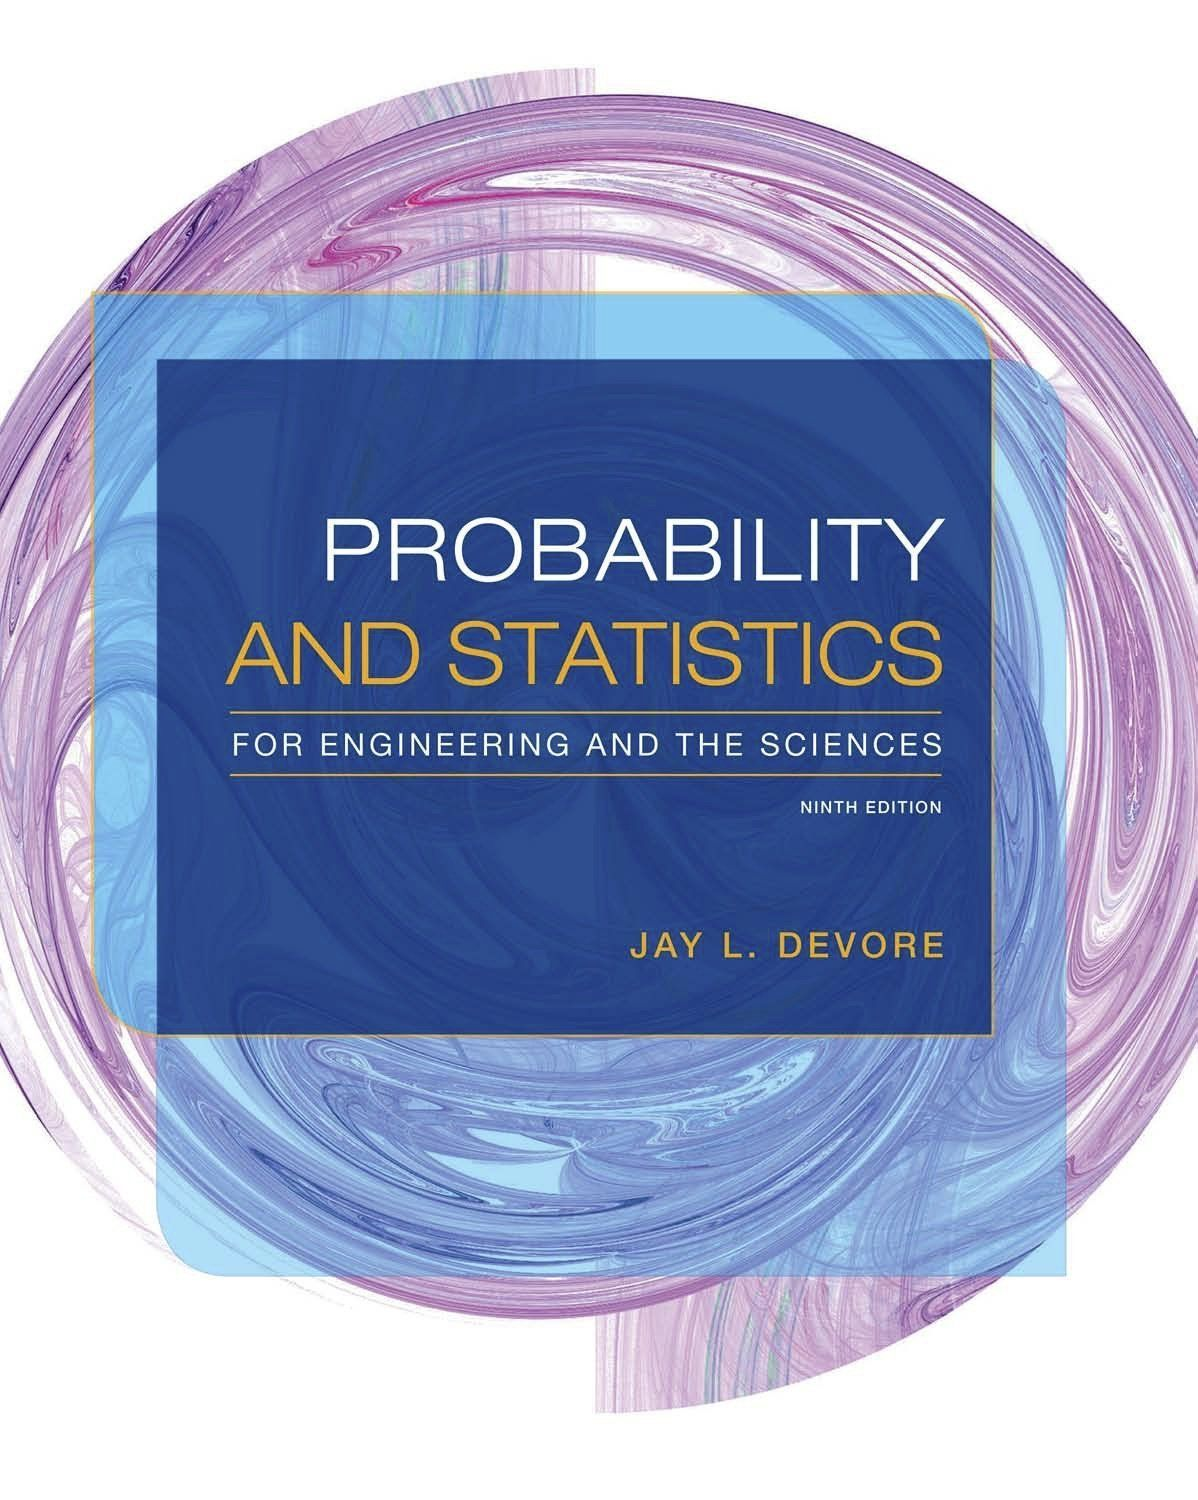 Account Suspended Probability And Statistics Probability Digital Book